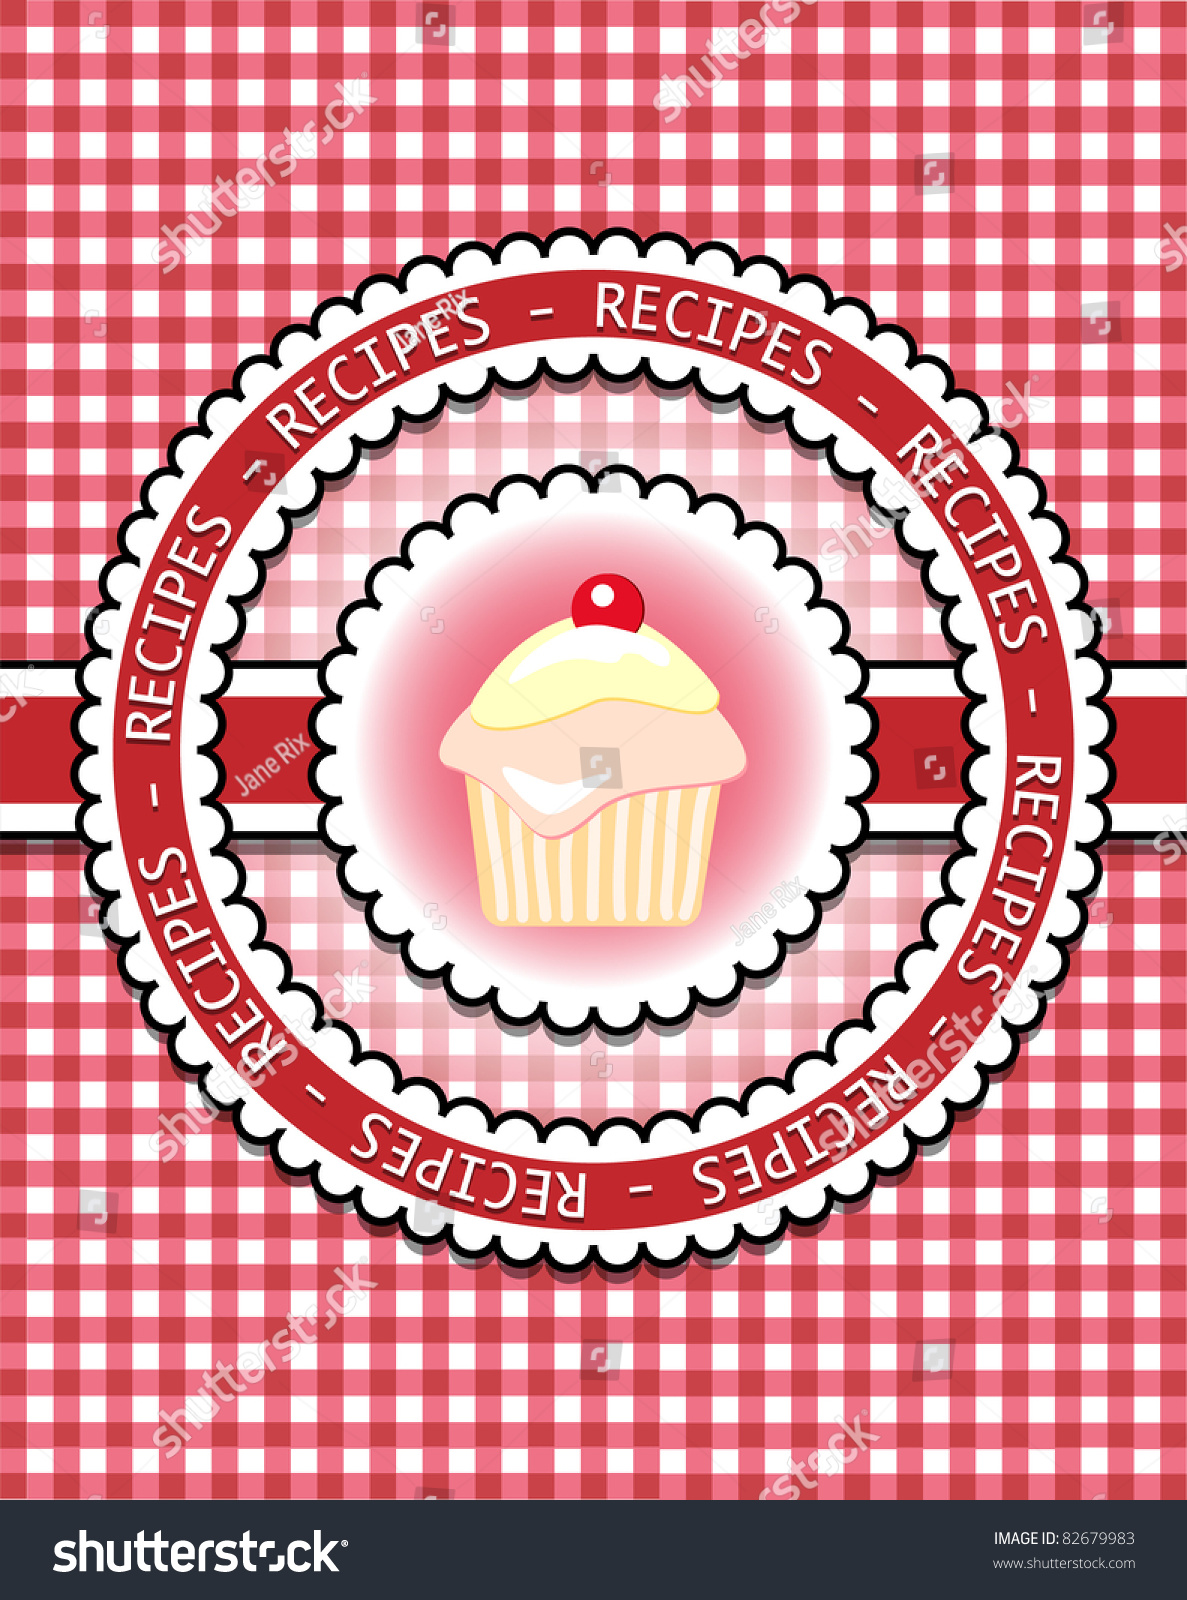 Checkered Cover Cookbook ~ Gingham recipe book cover with cupcake scrapbook style